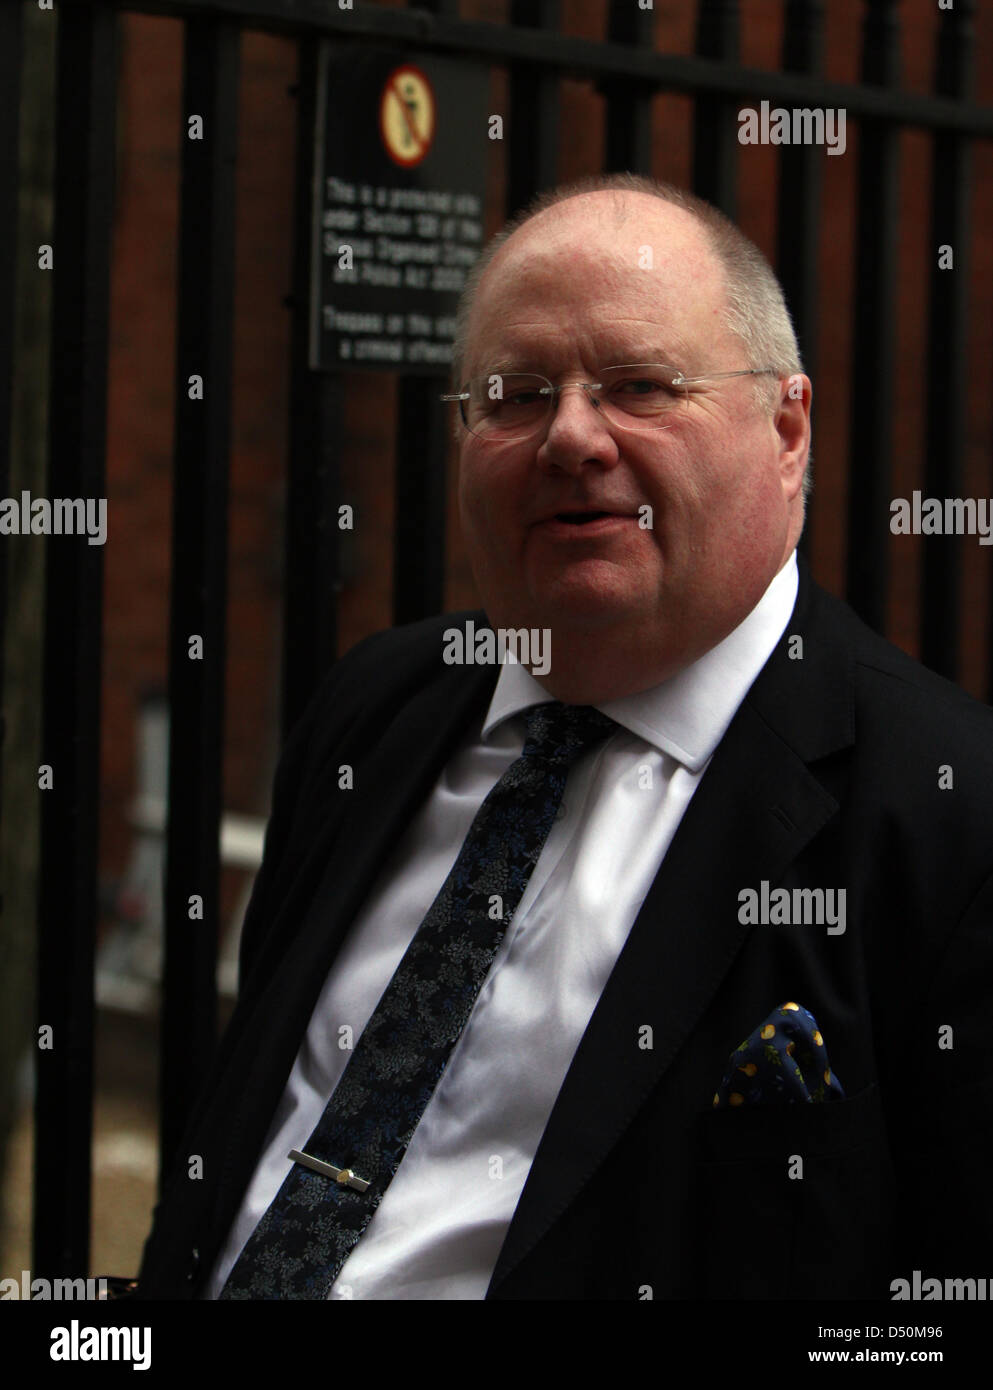 London, UK. 20th March 2013. Eric Pickles, Secretary of State for Communities and Local Government. Pic: Paul Marriott Stock Photo